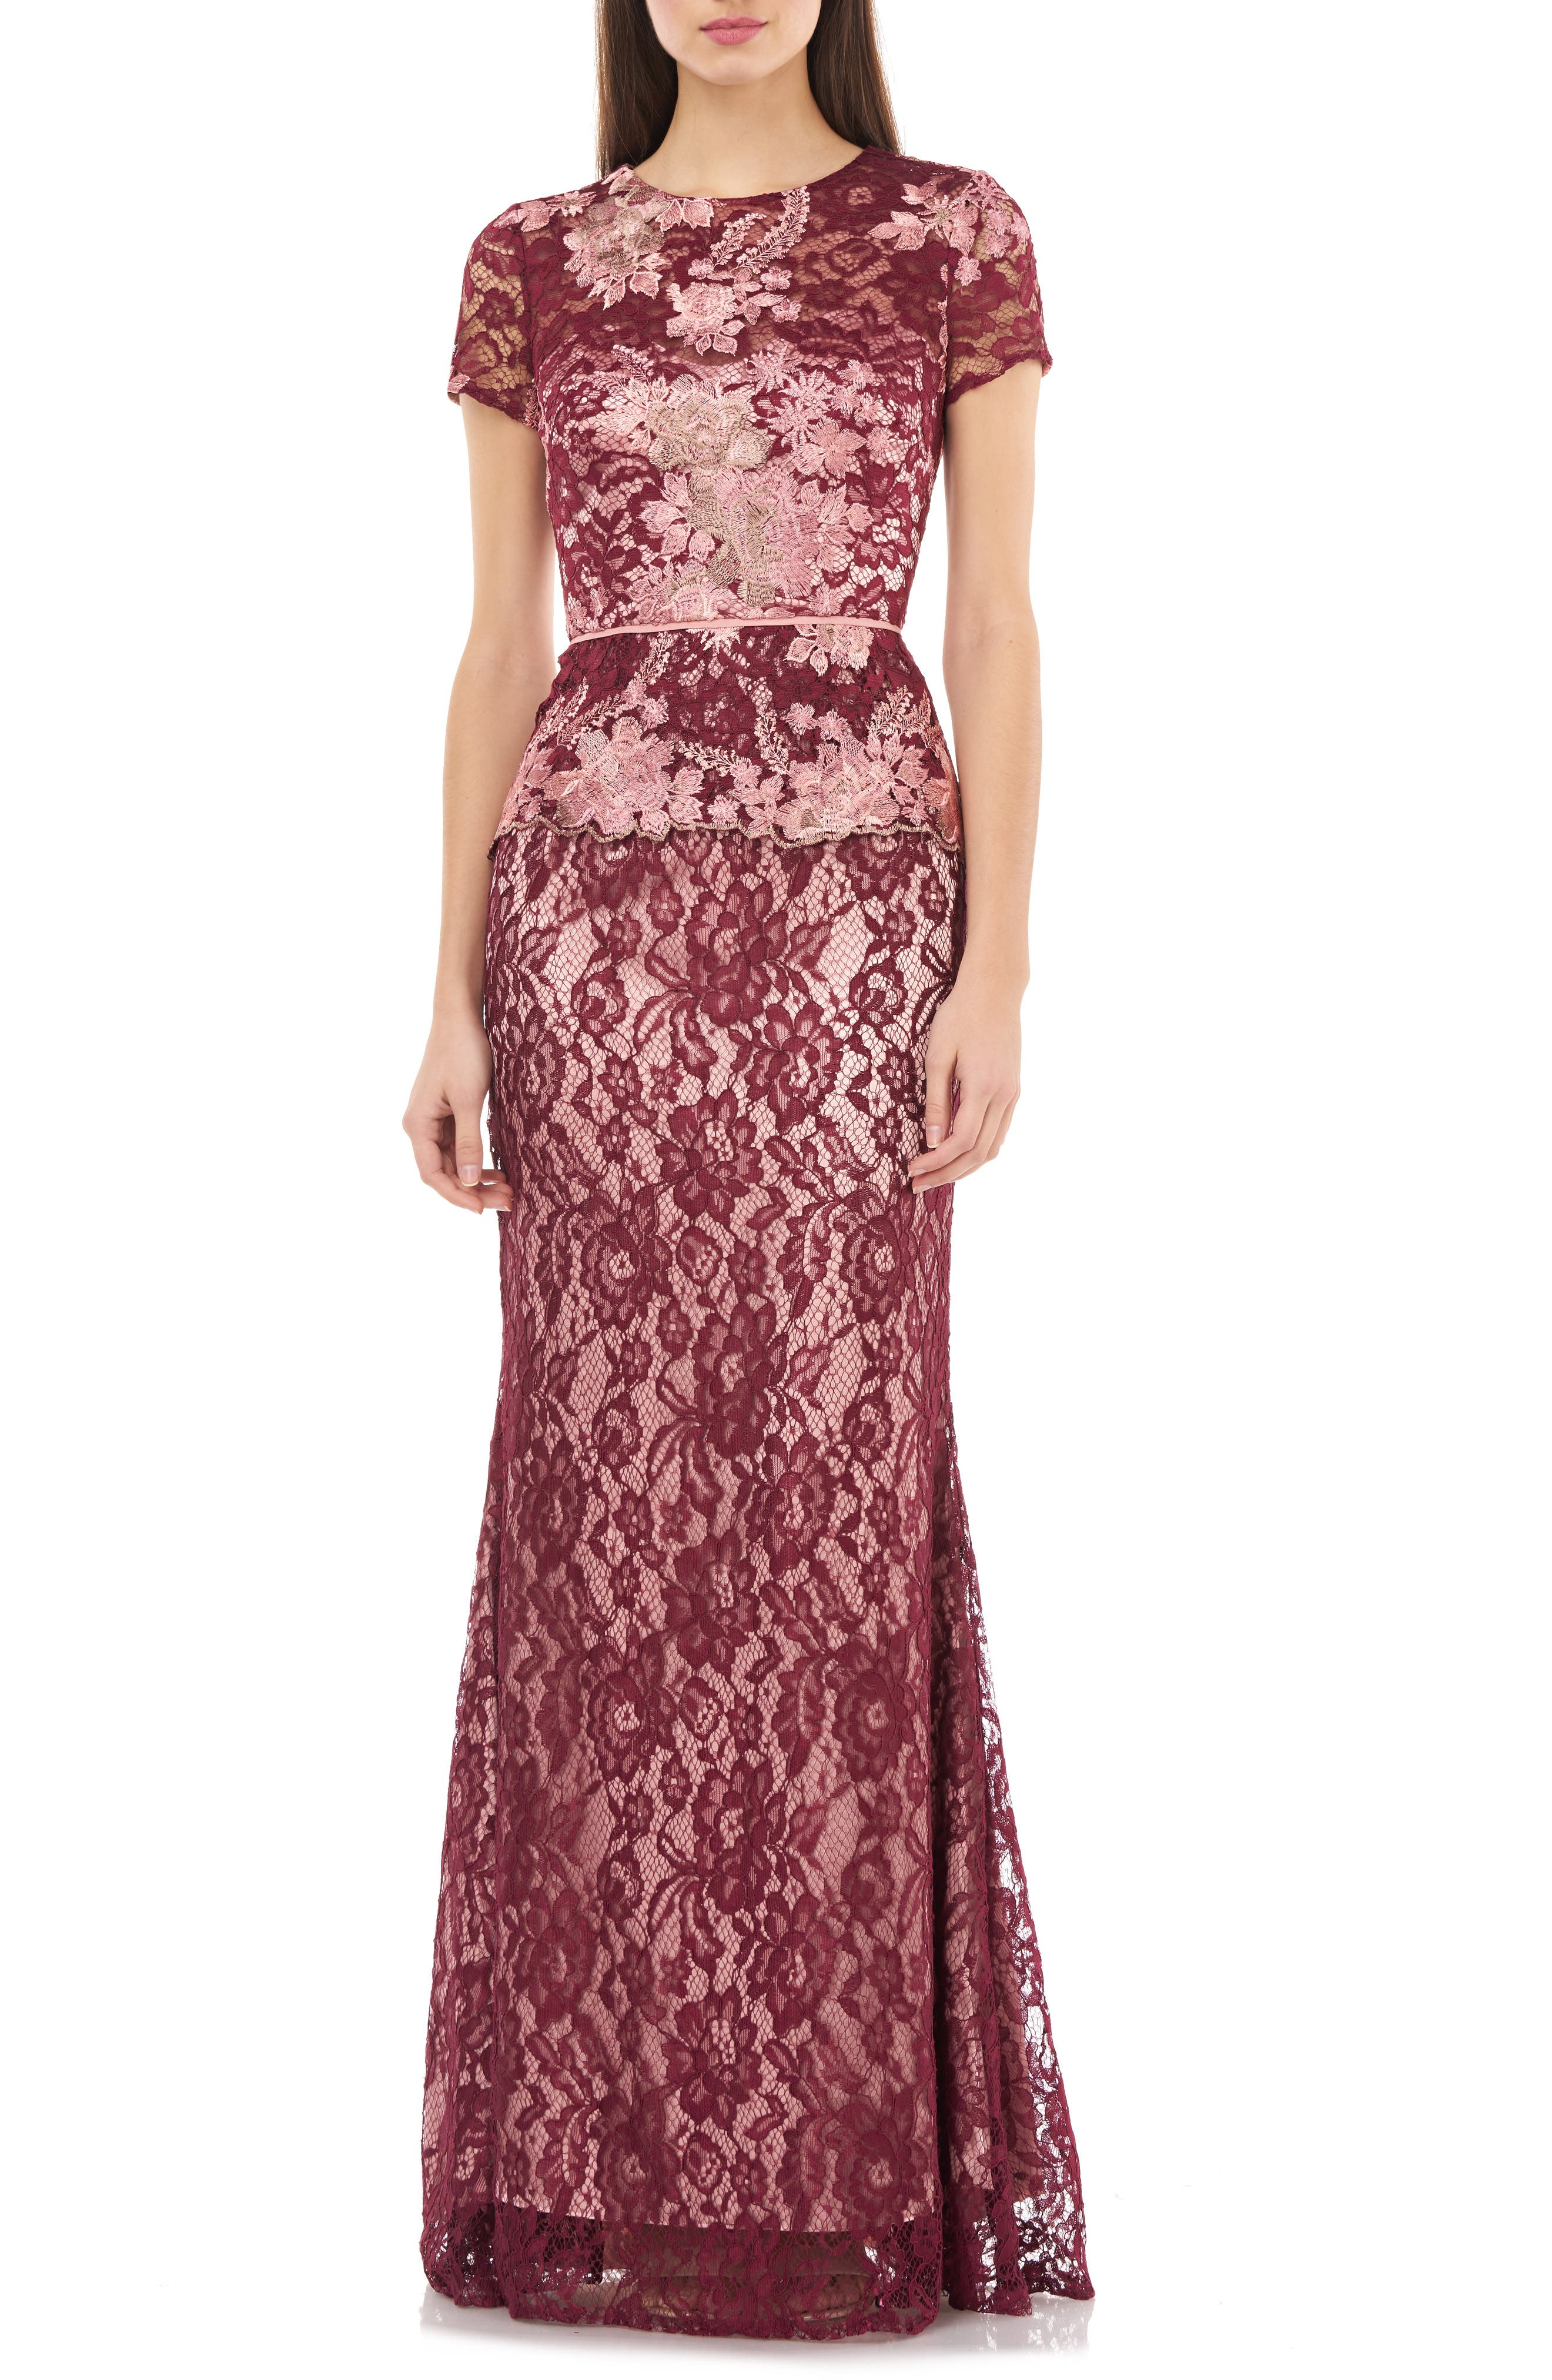 Js Collections Lace Gown, Burgundy